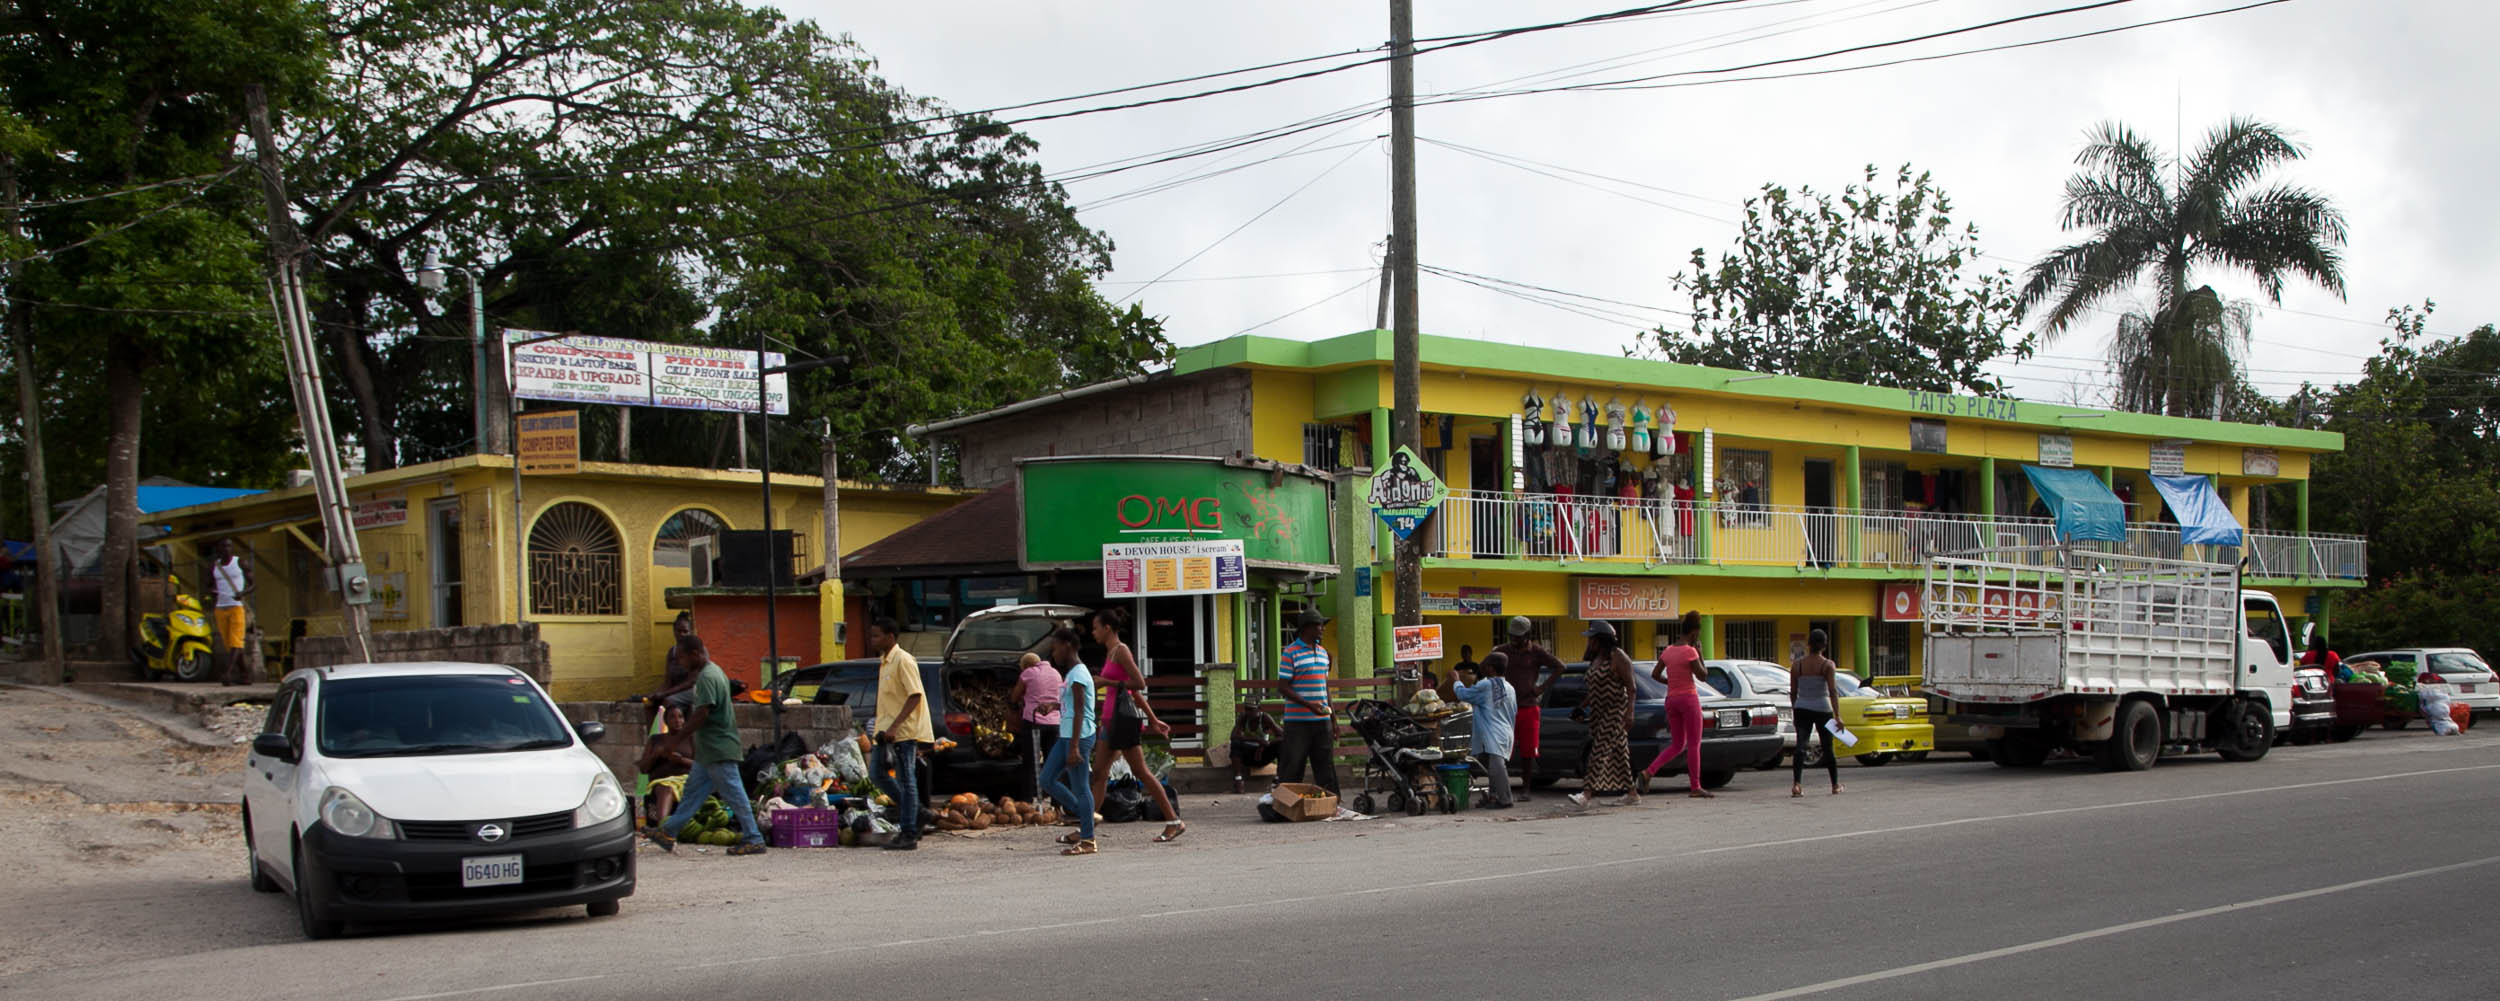 Taits Plaza - Negril Center Shopping - Negril Jamaica